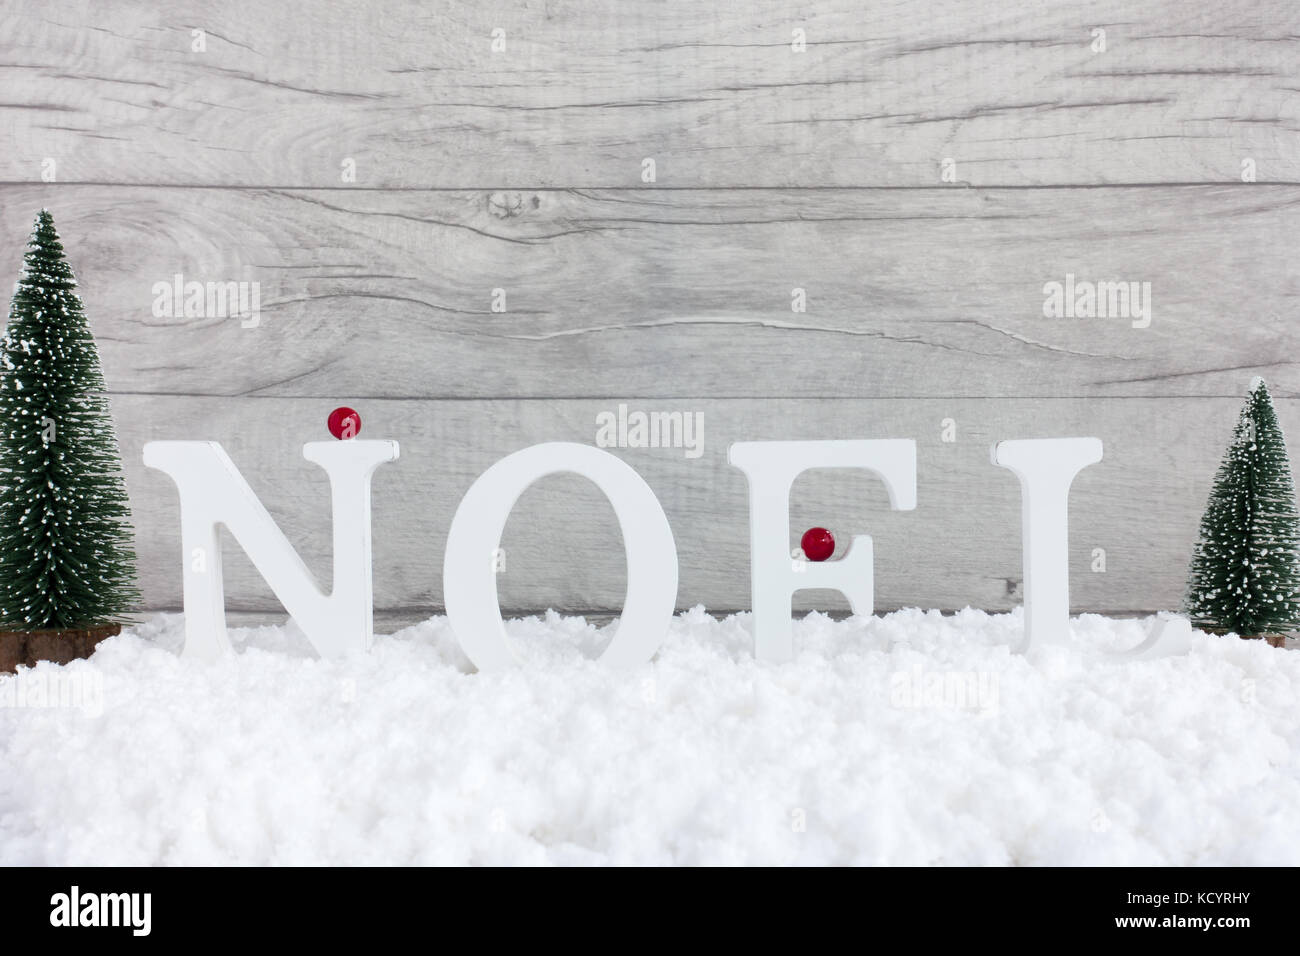 Winter scene with christmas trees and Noel written in wooden letters standing in snow and gray wooden background. - Stock Image